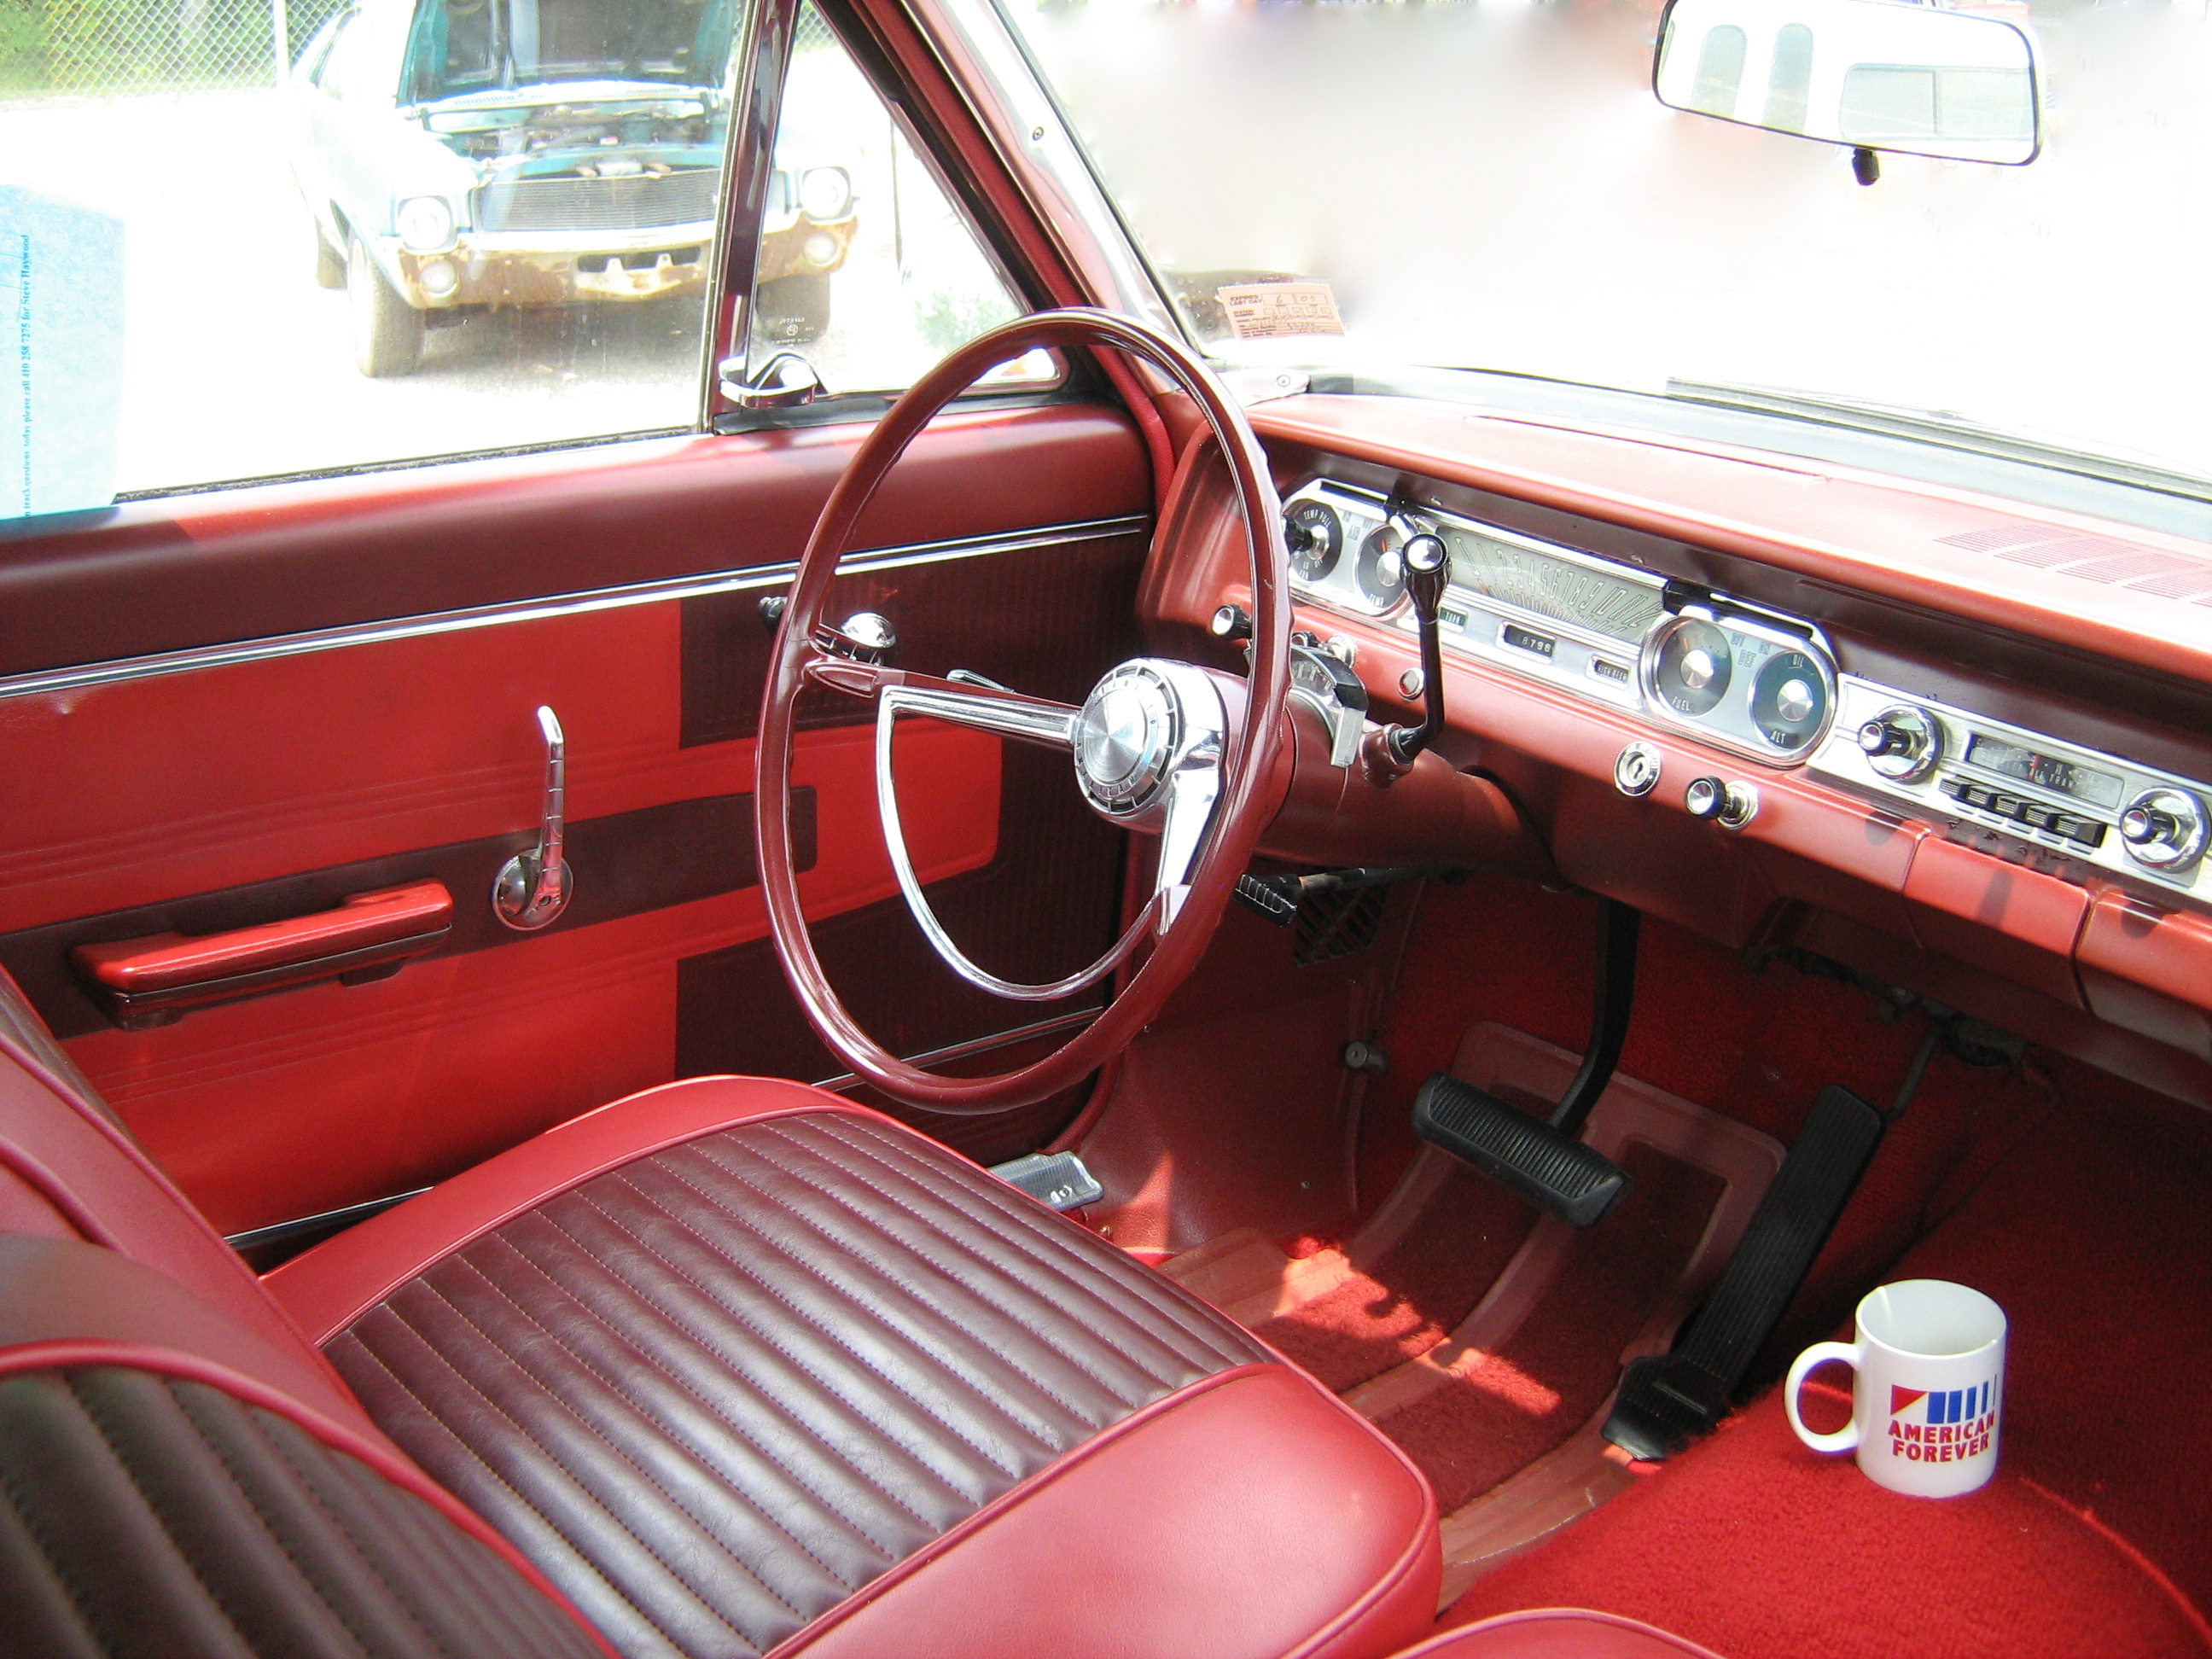 1963 AMC RAMBLER CLASSIC CUSTOM STATION WAGON 157655 besides 1965 Buick Wildcat furthermore 1950 Deluxe Convertible in addition 1935 Ford Pickup likewise 1966 1967 Buick Riviera Review Specs. on 1963 amc interior